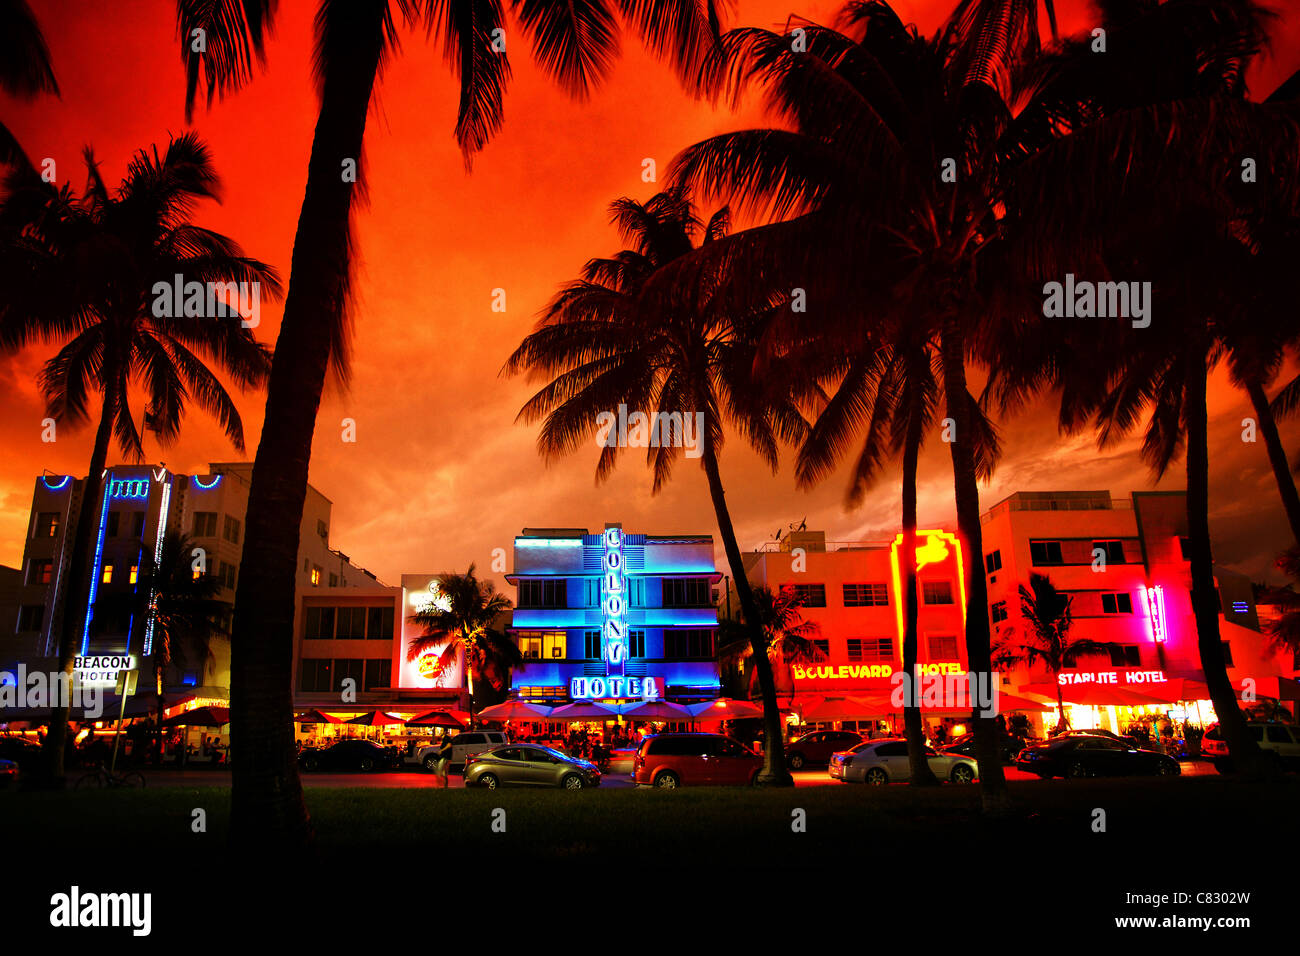 Art Deco Hotels With Neon Lights On Miami Beach At Sunset